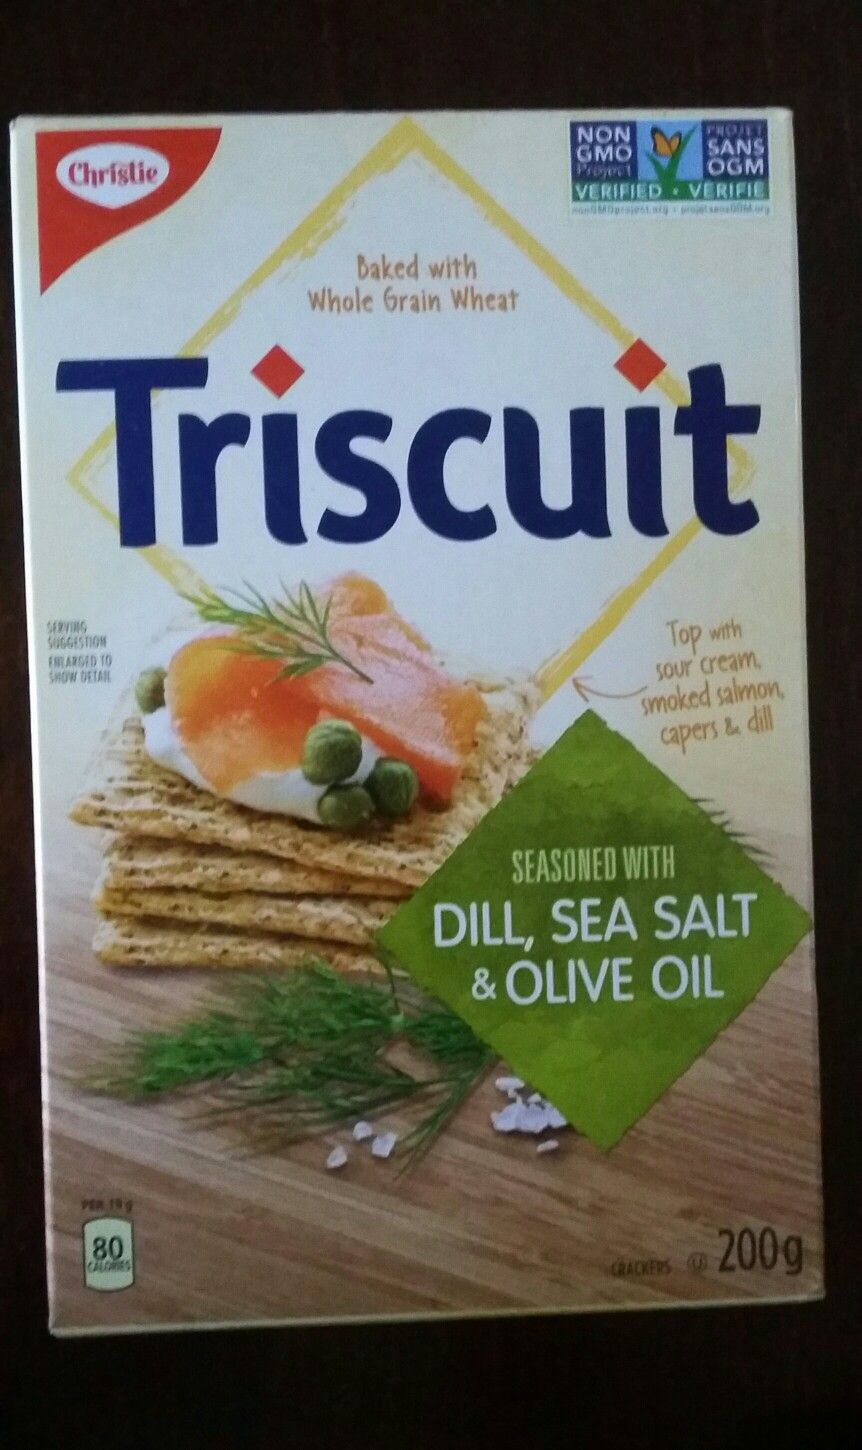 Pin by sweet angel on pantry Triscuit, Olive oil walmart